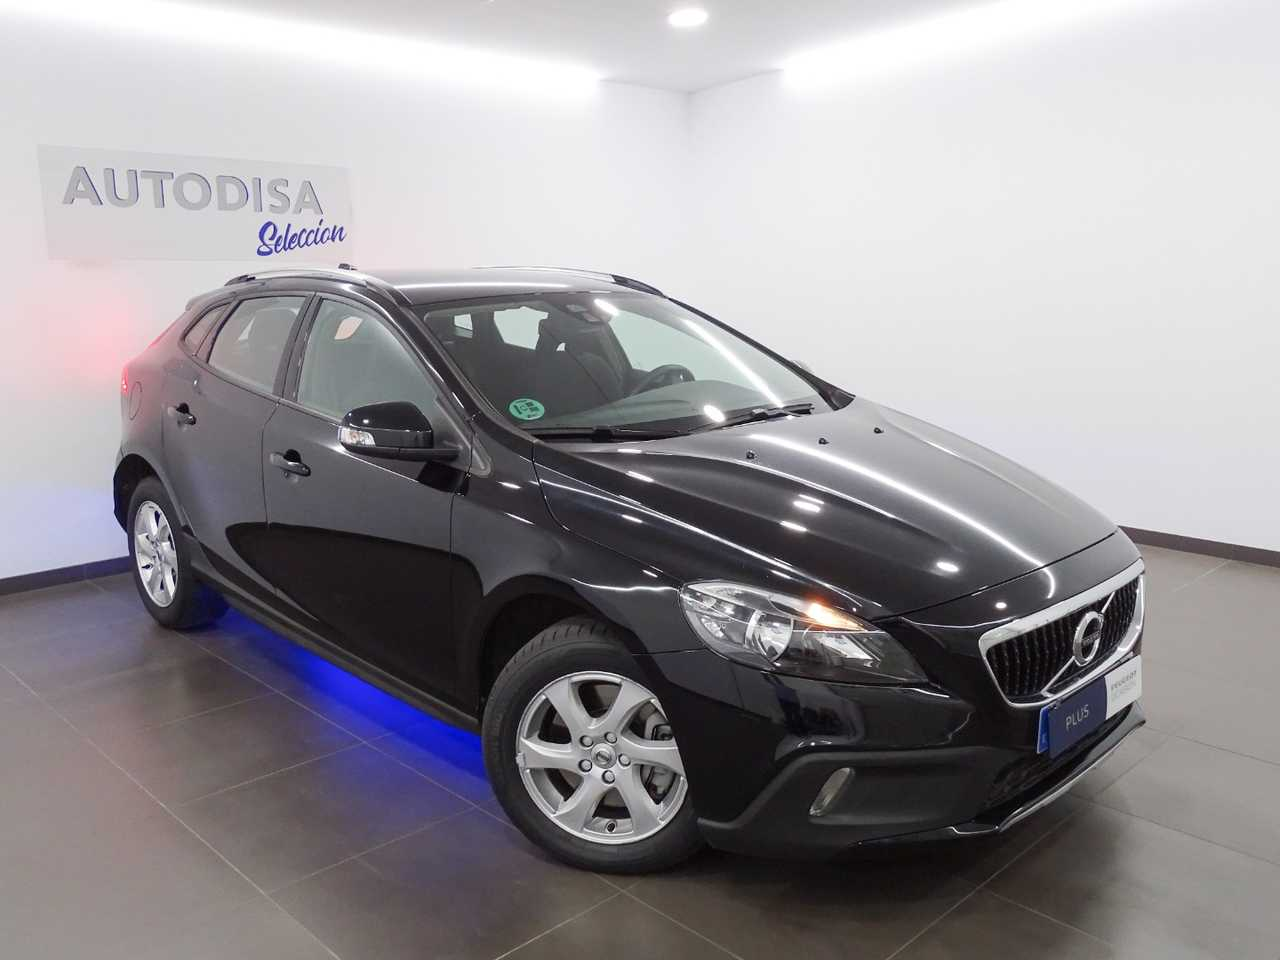 Volvo V40 Cross Country 2.0 D2 88KW 120 CROSS COUNTRY